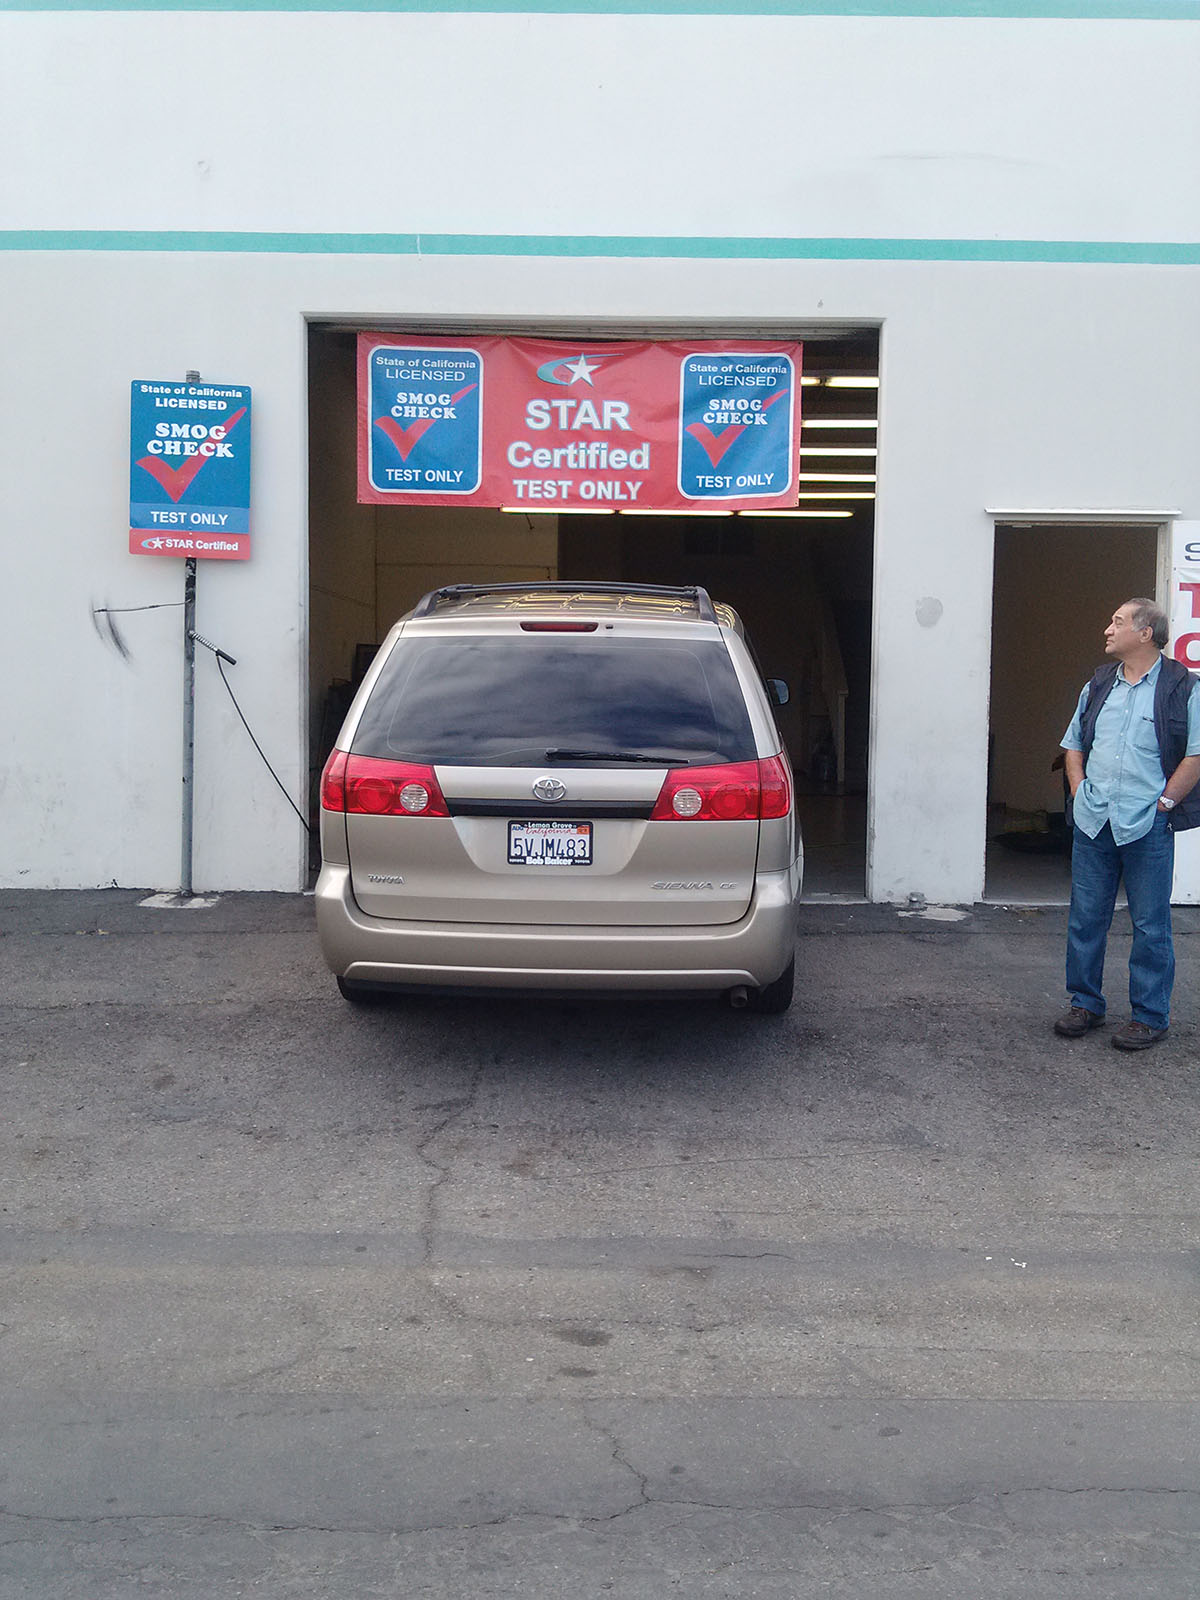 About Smog Check Star Station Oceanside